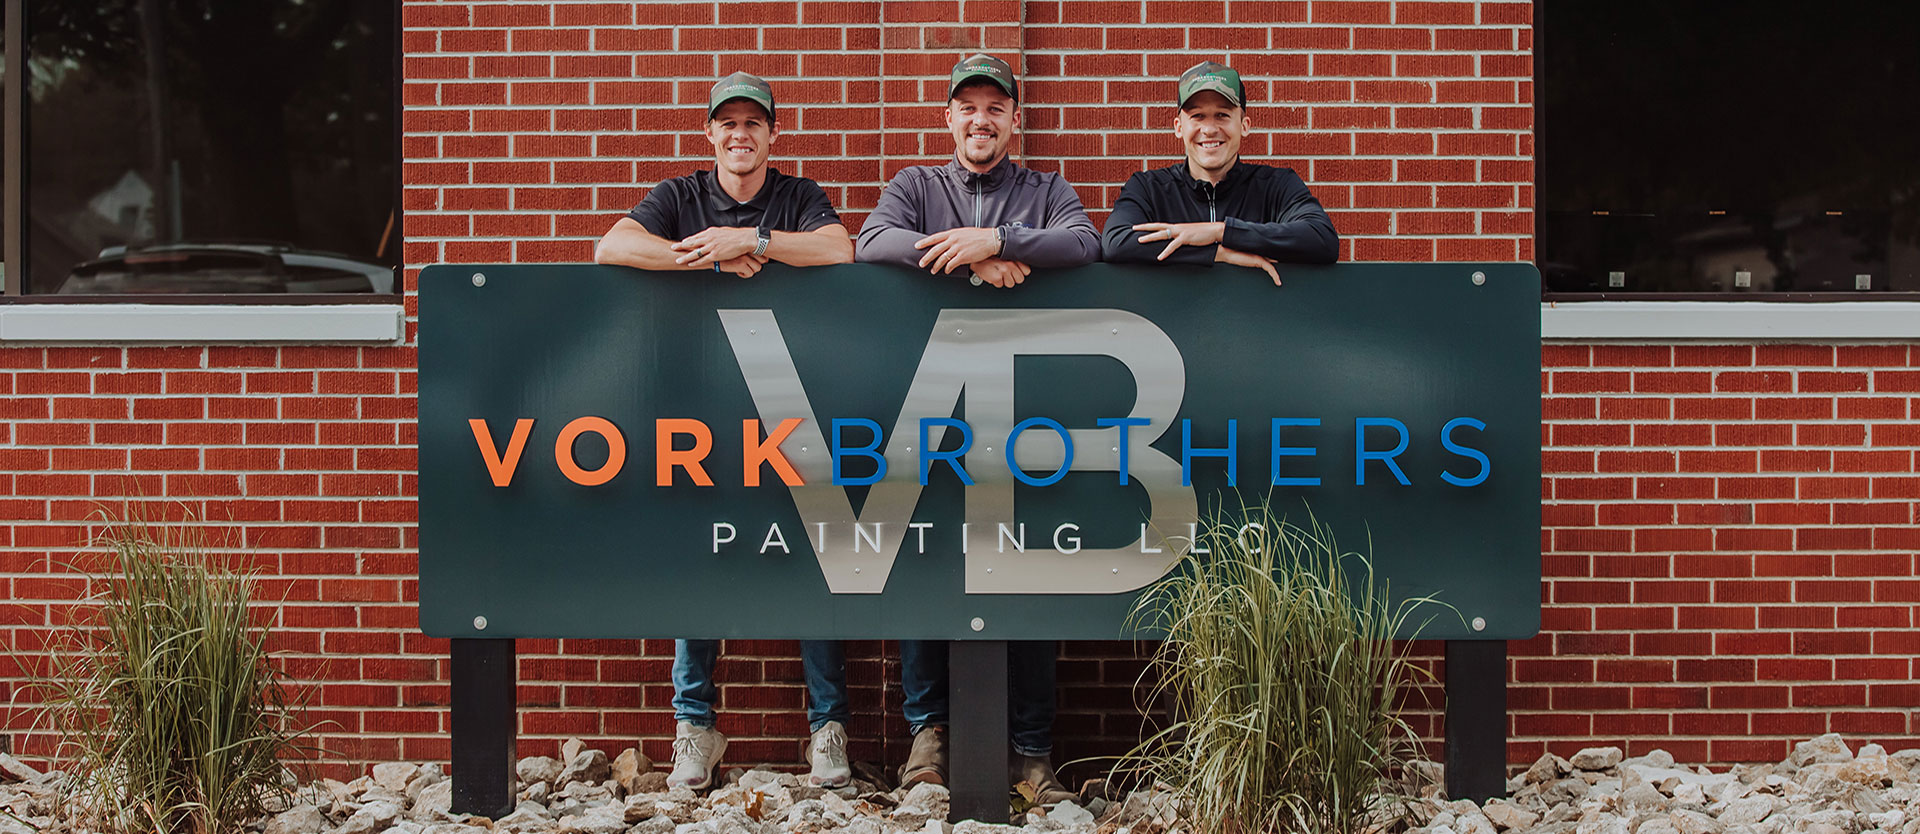 Vork Brothers standing by Vork Brothers Painting office sign